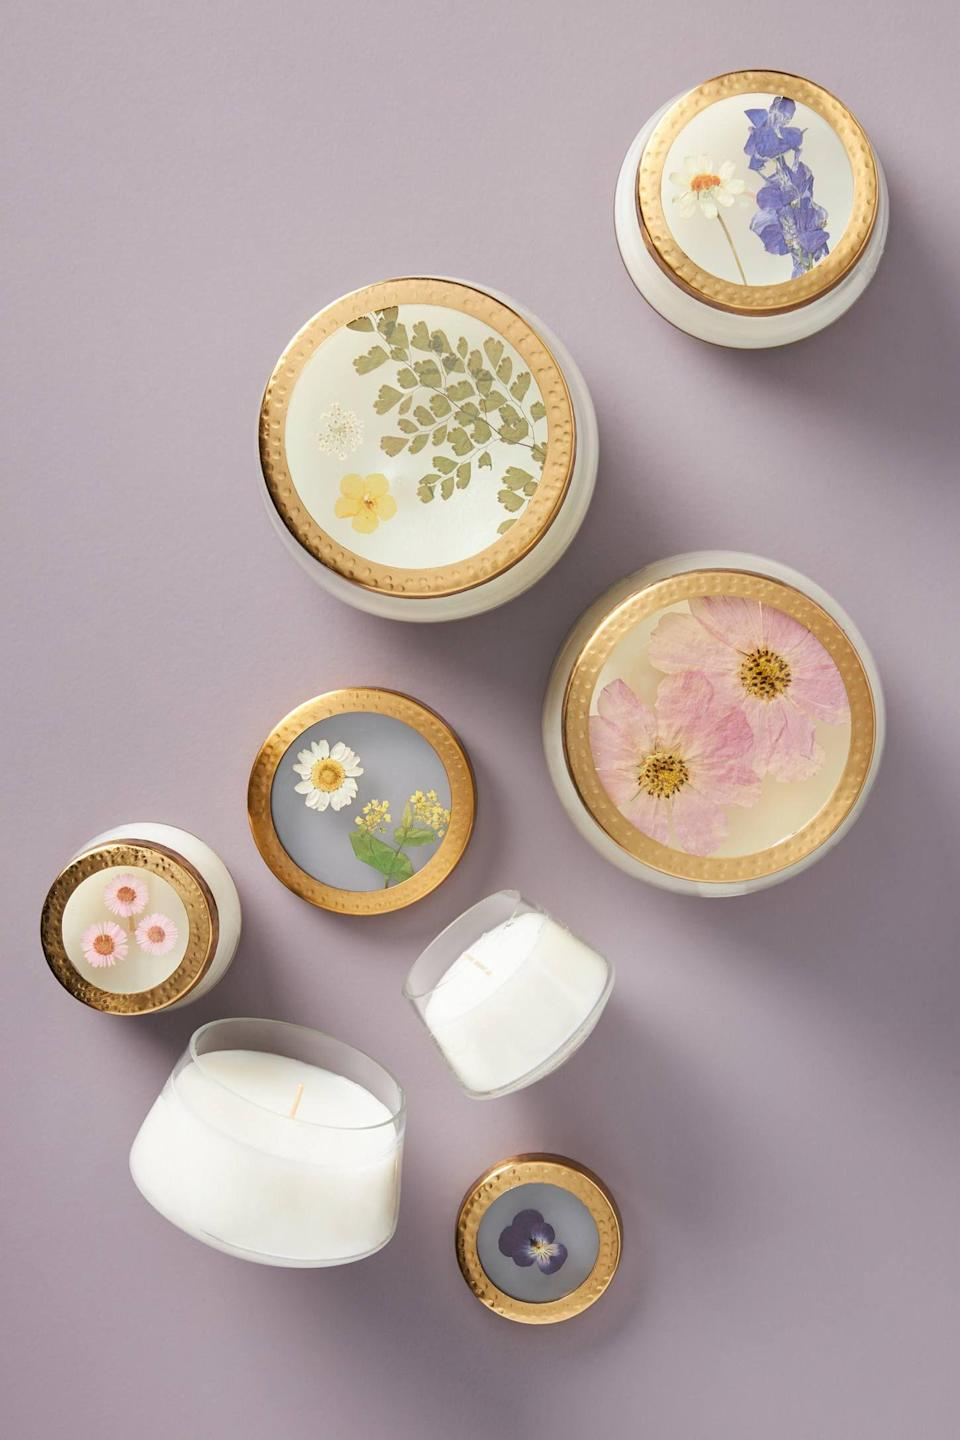 "<p><strong>Rosy Rings Anthropologie</strong></p><p>anthropologie.com</p><p><strong>$26.00</strong></p><p><a href=""https://go.redirectingat.com?id=74968X1596630&url=https%3A%2F%2Fwww.anthropologie.com%2Fshop%2Ffloral-press-candle&sref=https%3A%2F%2Fwww.goodhousekeeping.com%2Fholidays%2Fgift-ideas%2Fg34386830%2Fanthropologie-holiday-collection-2020%2F"" rel=""nofollow noopener"" target=""_blank"" data-ylk=""slk:Shop Now"" class=""link rapid-noclick-resp"">Shop Now</a></p>"